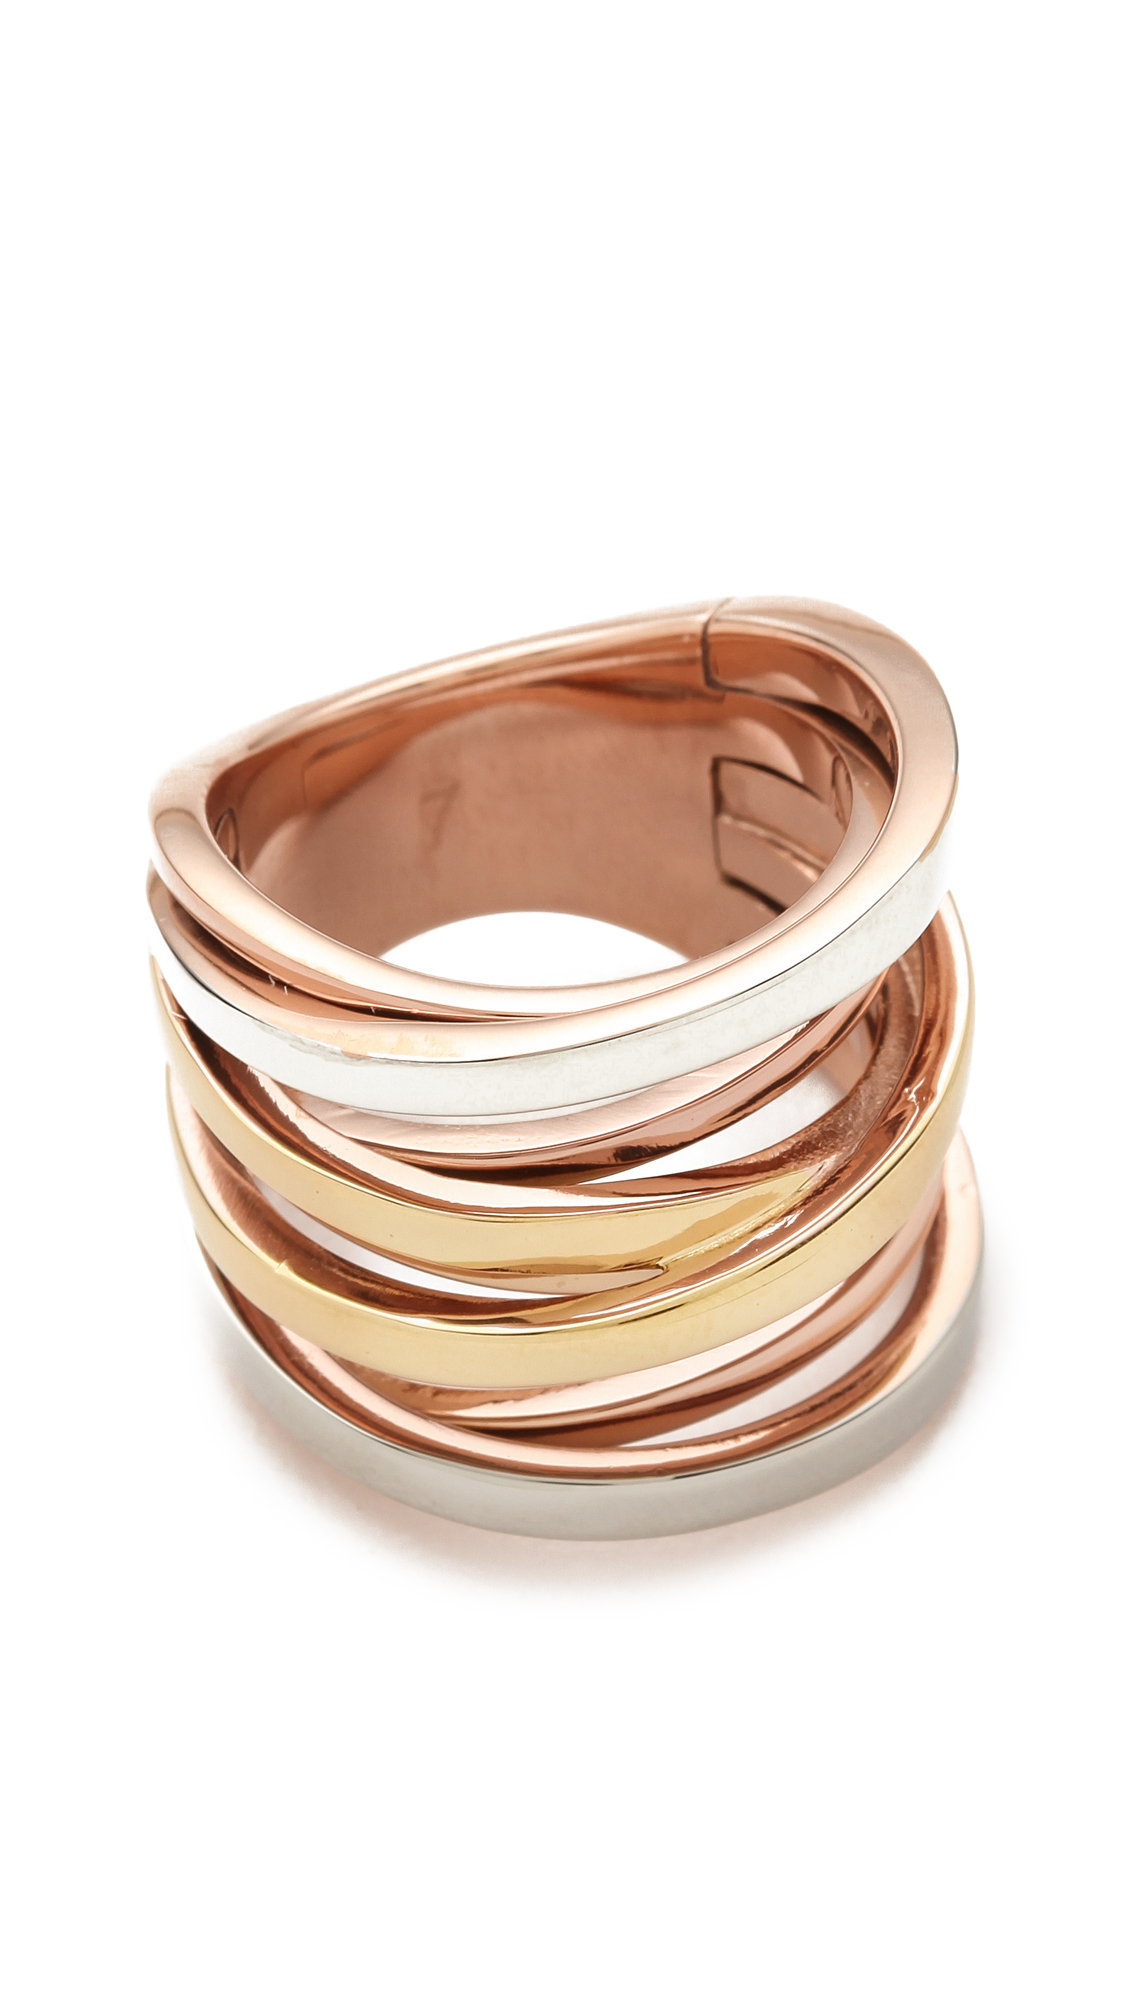 Michael kors brilliance tritone intertwined ring in gold lyst